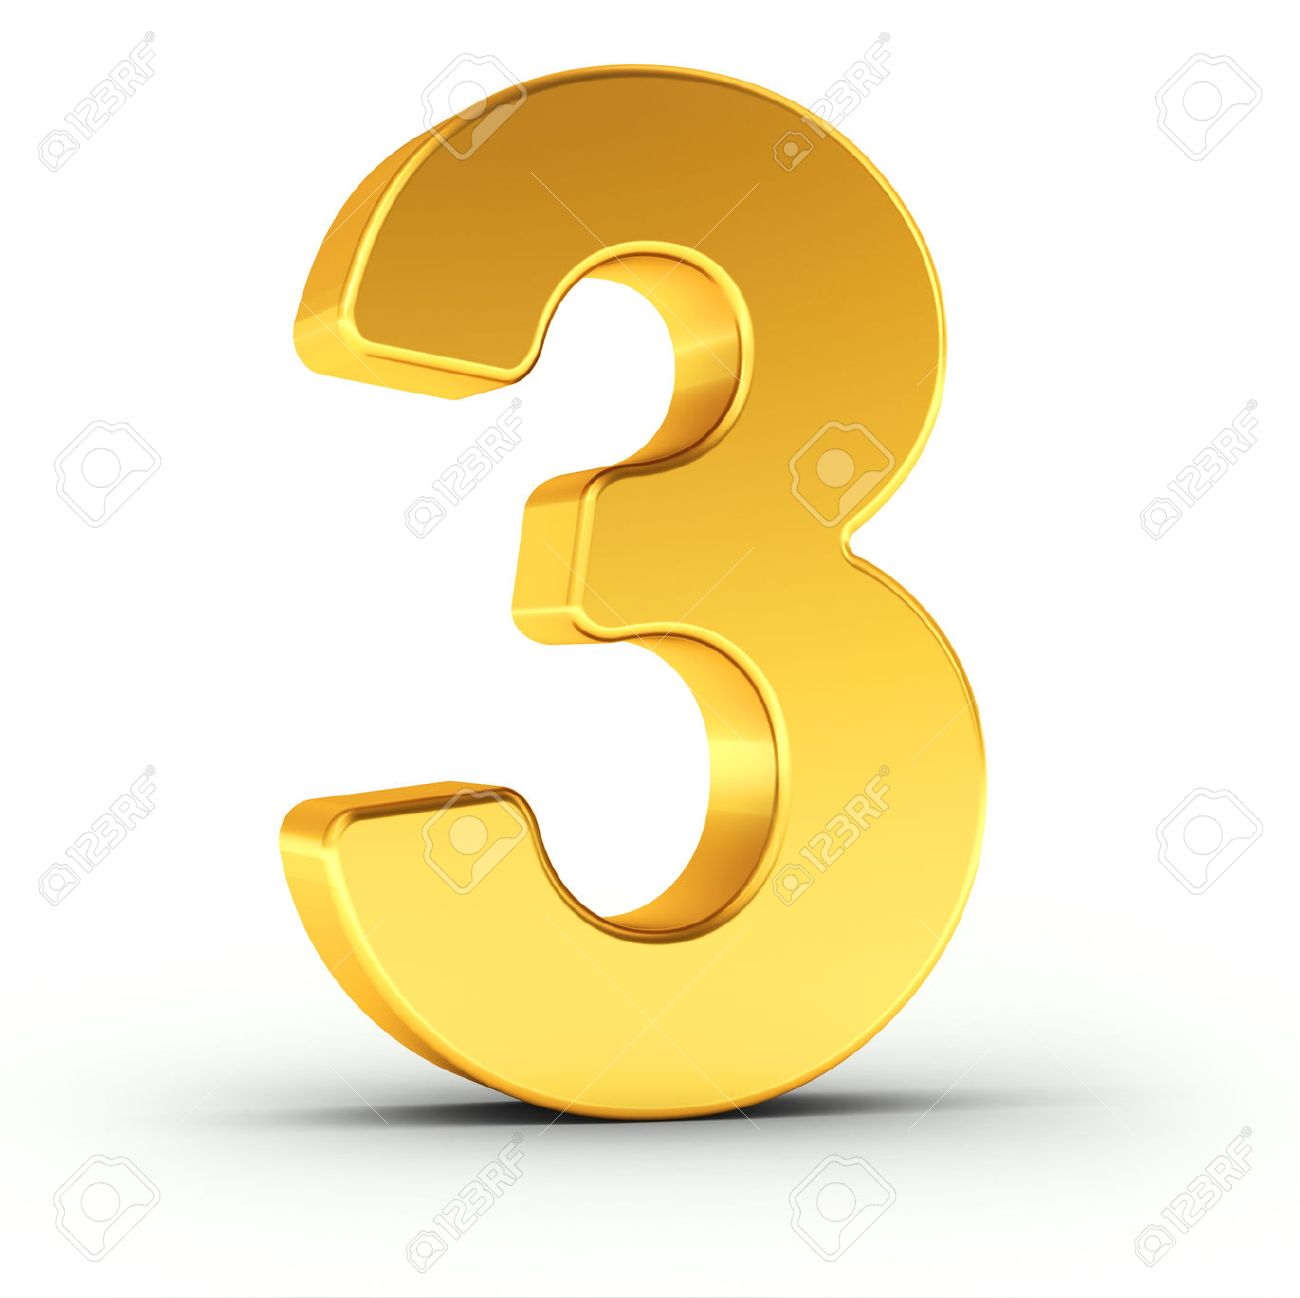 The number three as a polished golden object over white background with clipping path for quick and accurate isolation. - 52778259